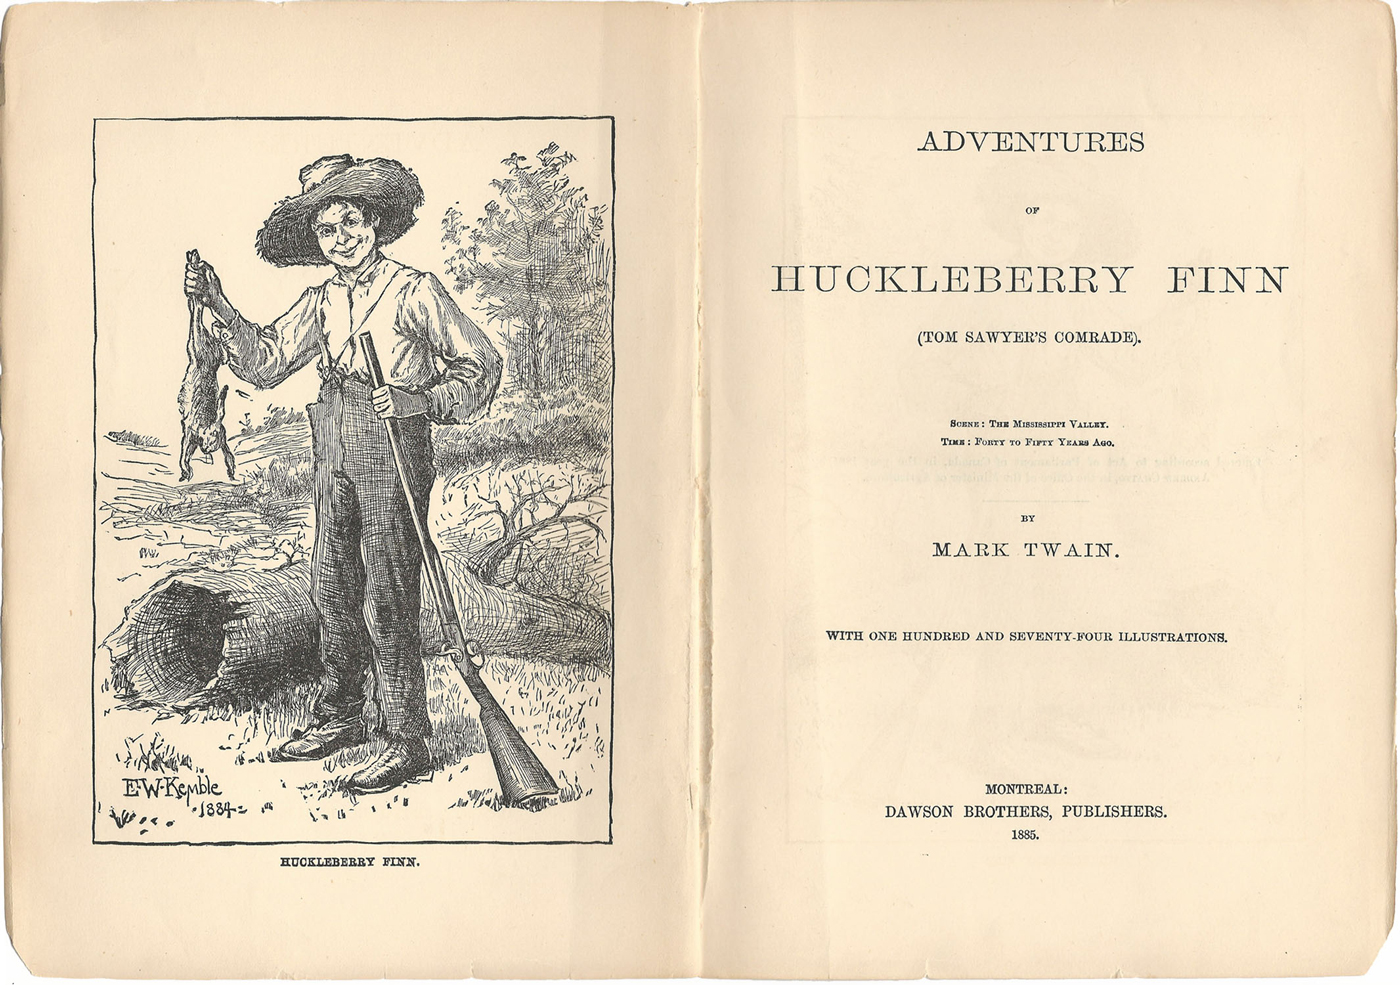 huckleberry finn influences on huck Expository essays term papers (paper 4615) on the adventures of huckleberry finn - early influences on huck finn: mark twain's the adventures of huckleberry finn is a novel about a young boy's coming of age in the missouri of the mid-1800's.